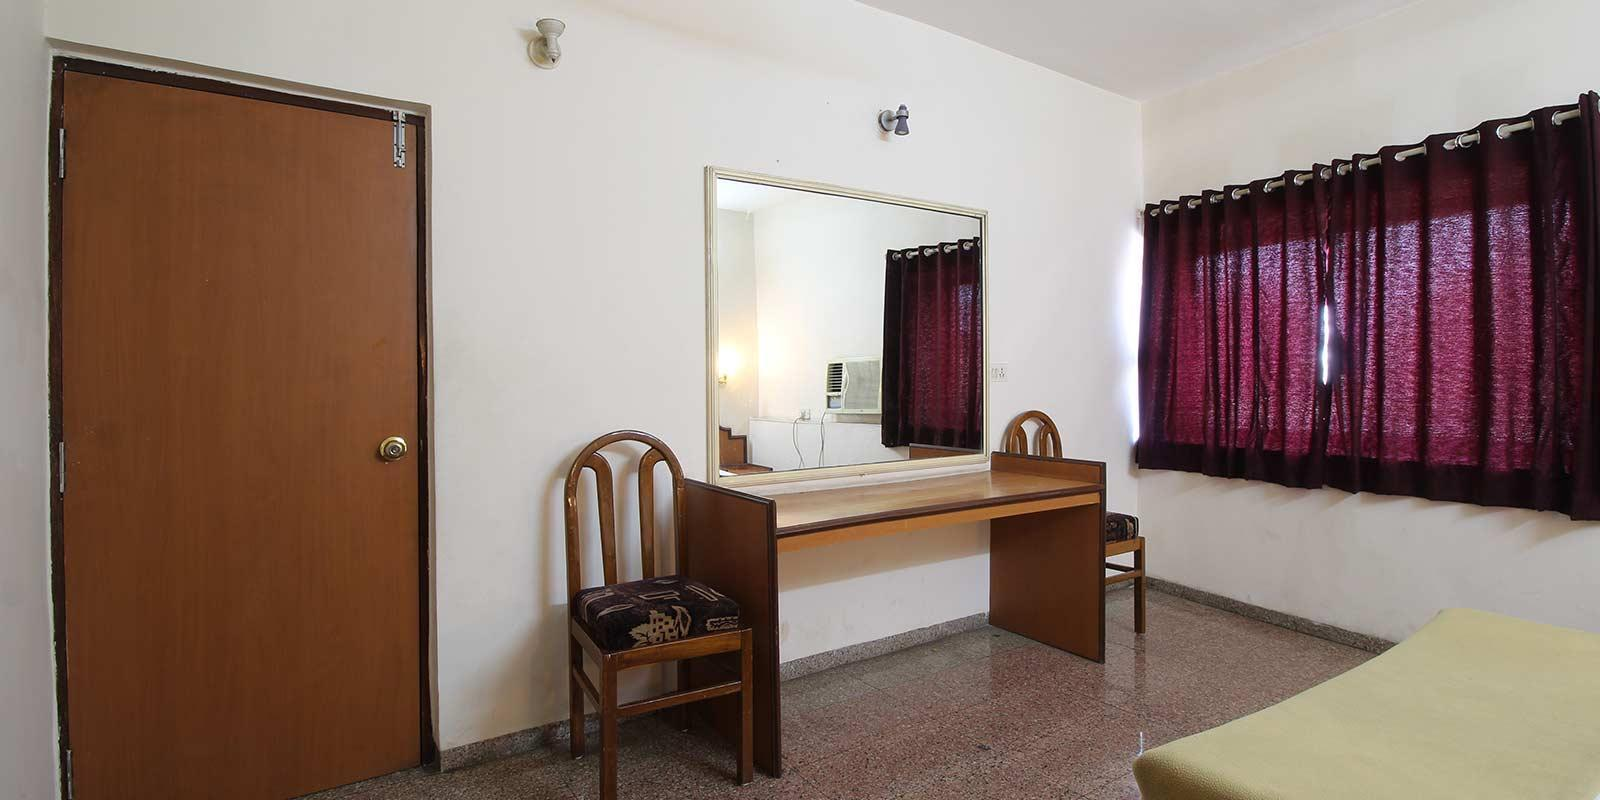 Hotel Soubhagya Inn, Dadra and Nagar Haveli